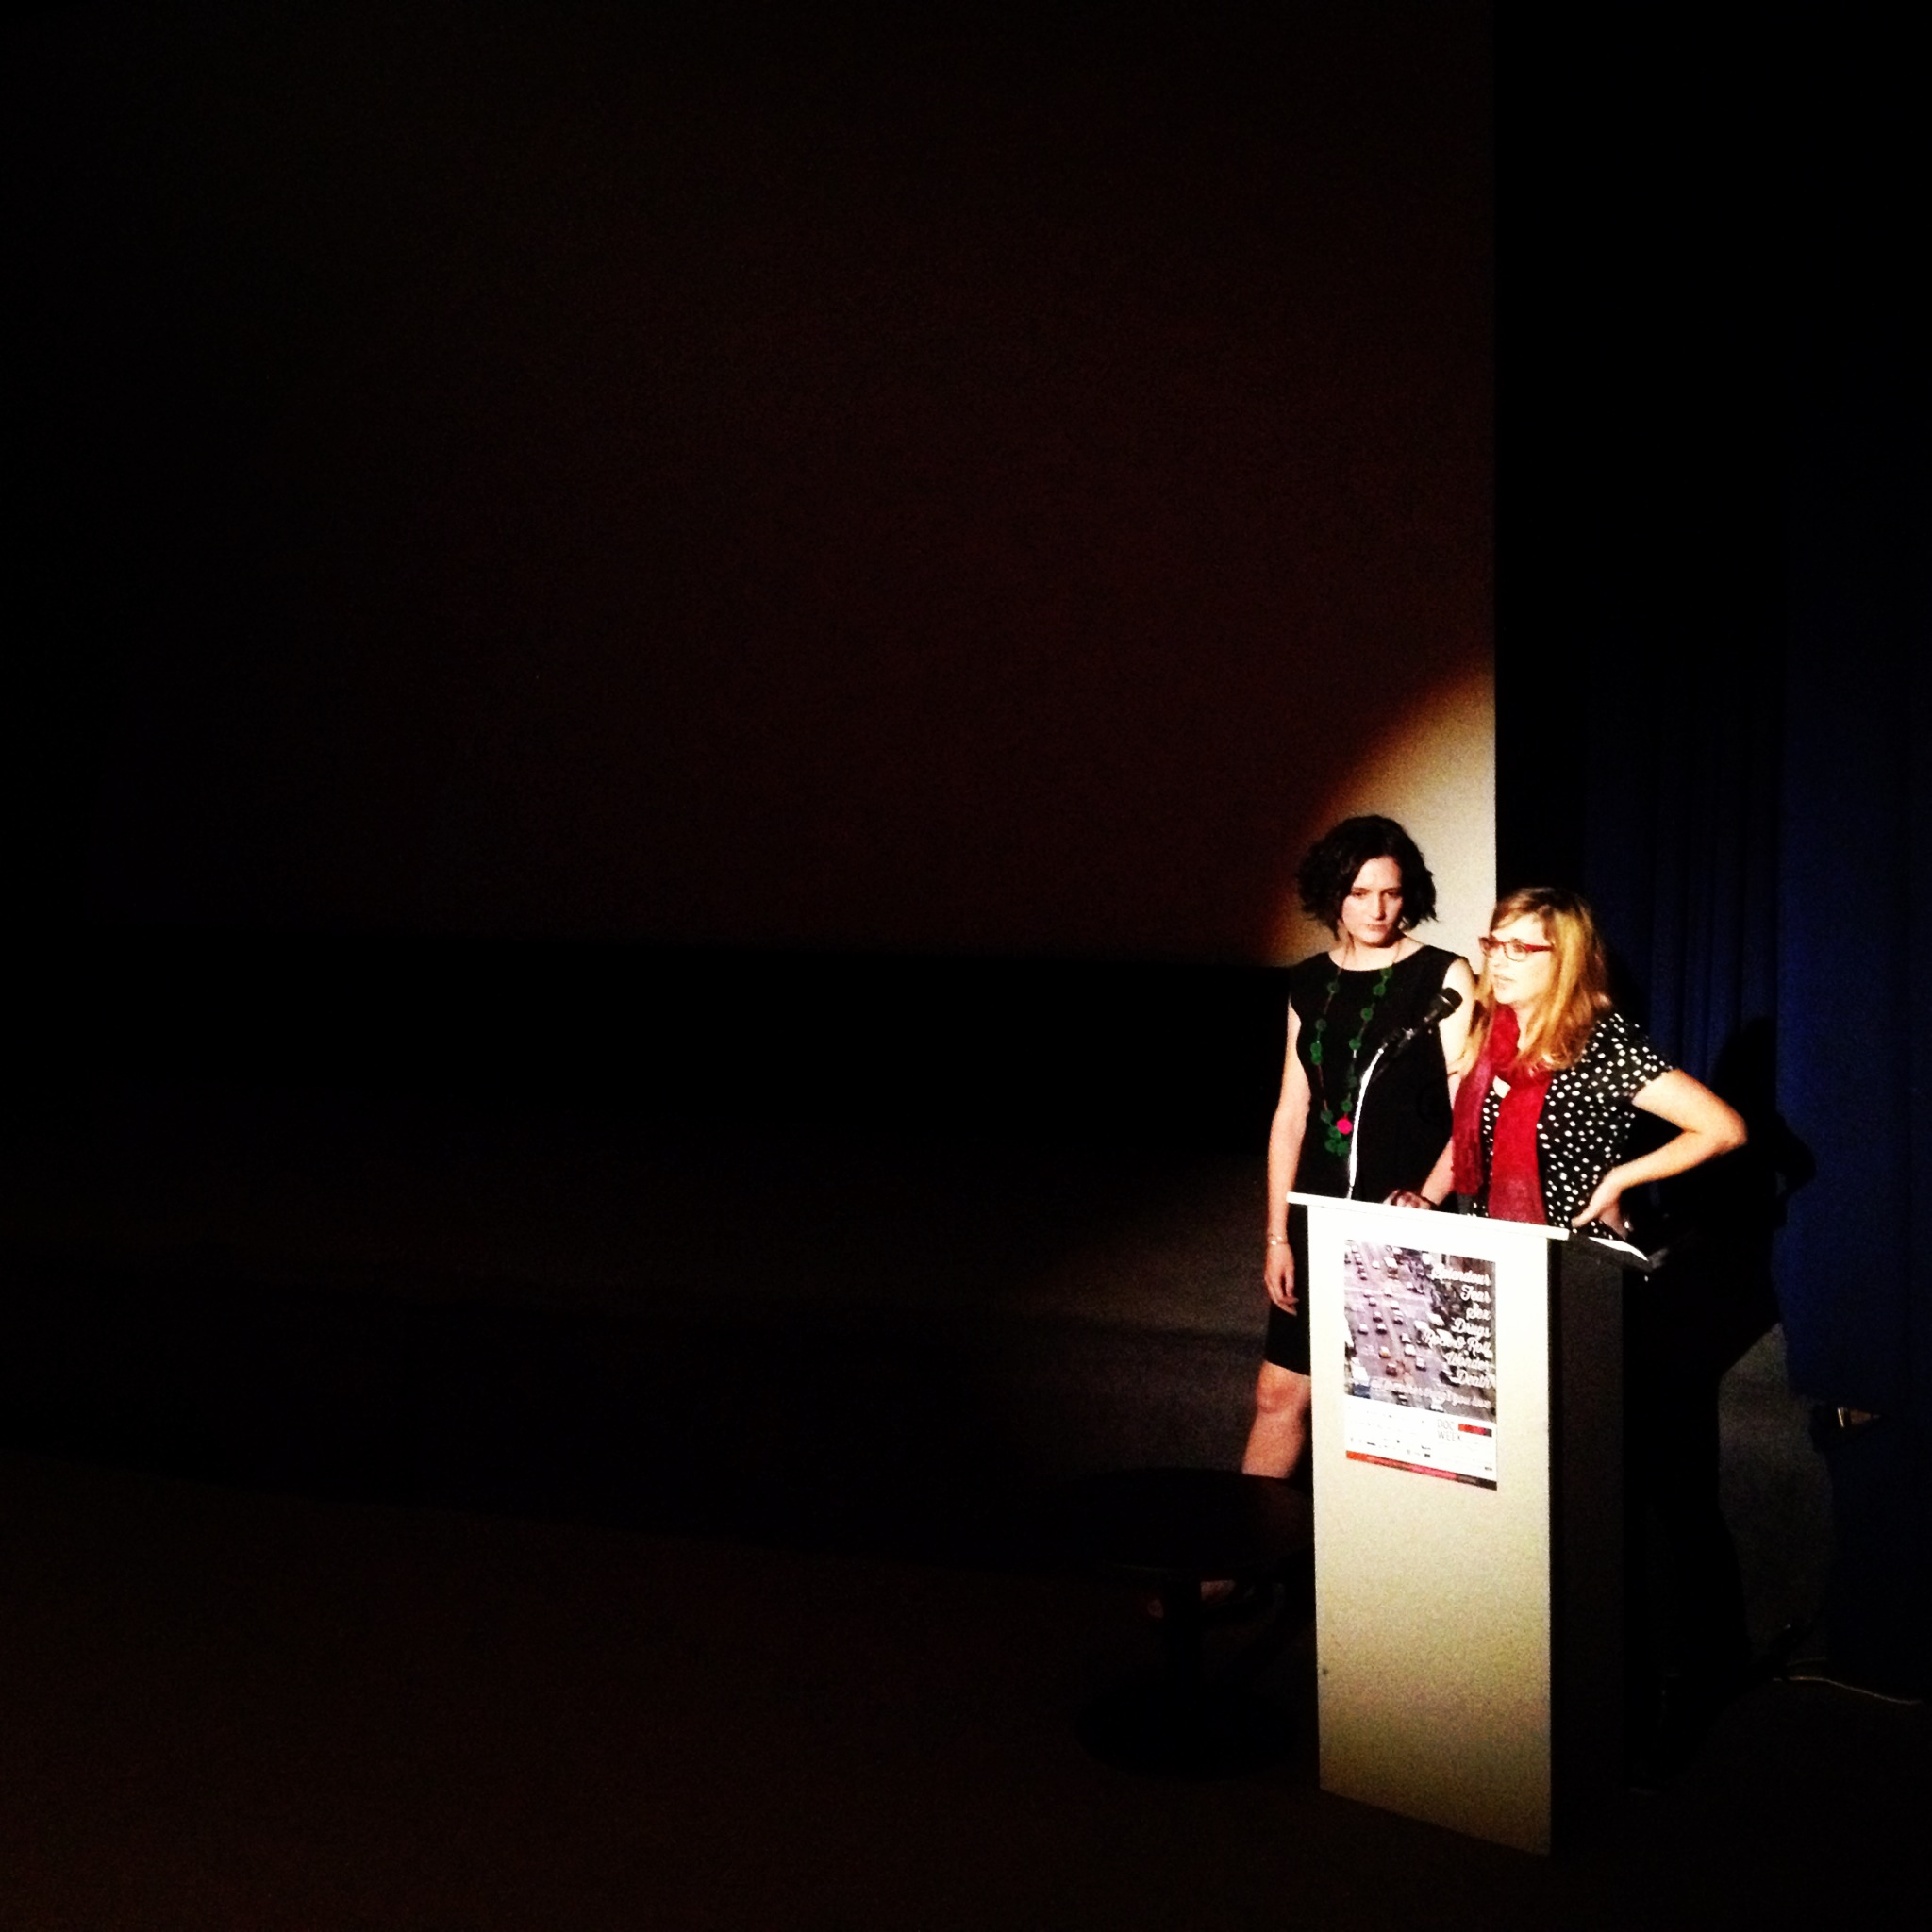 Speaking about Stingray Sisters at AIDC DocWeek's closing night